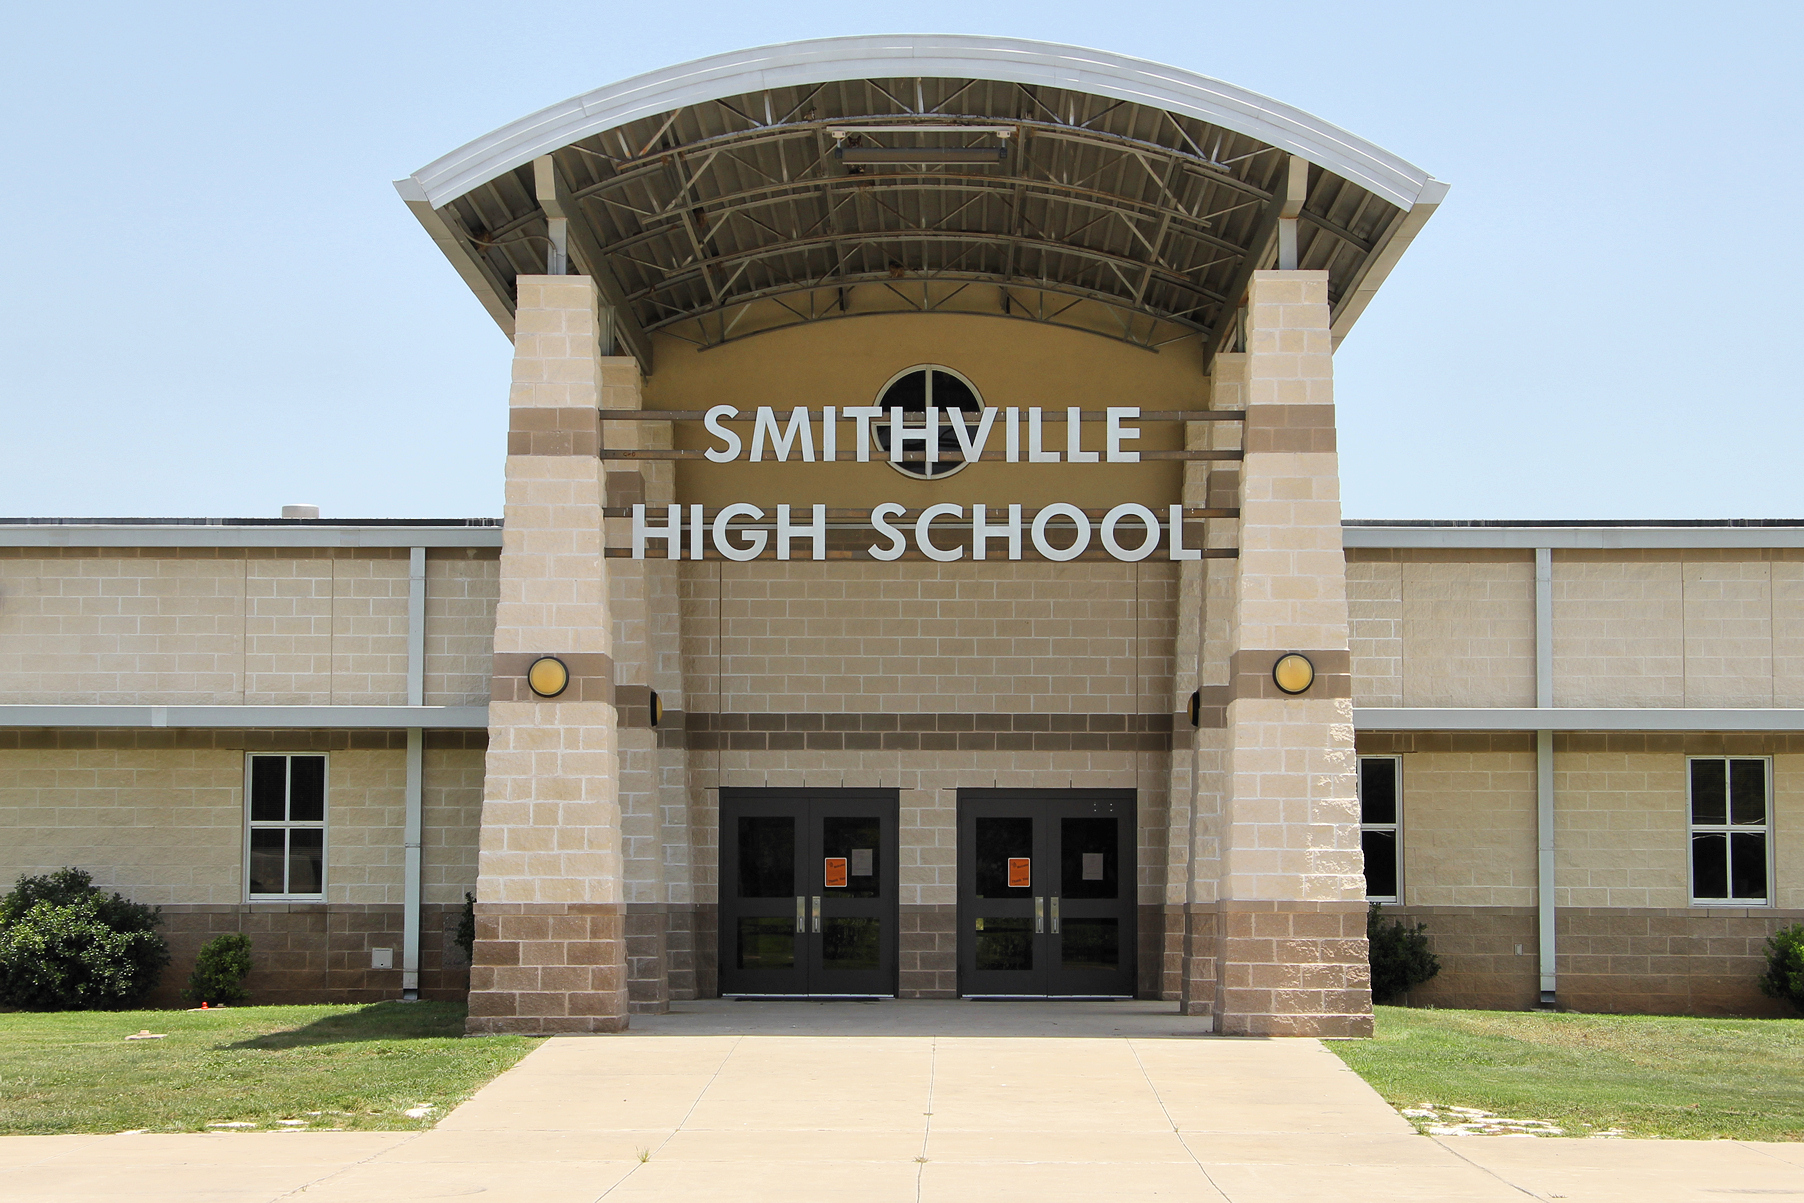 Smithville (TX) United States  City new picture : Smithville high school entry 2012 Wikimedia Commons